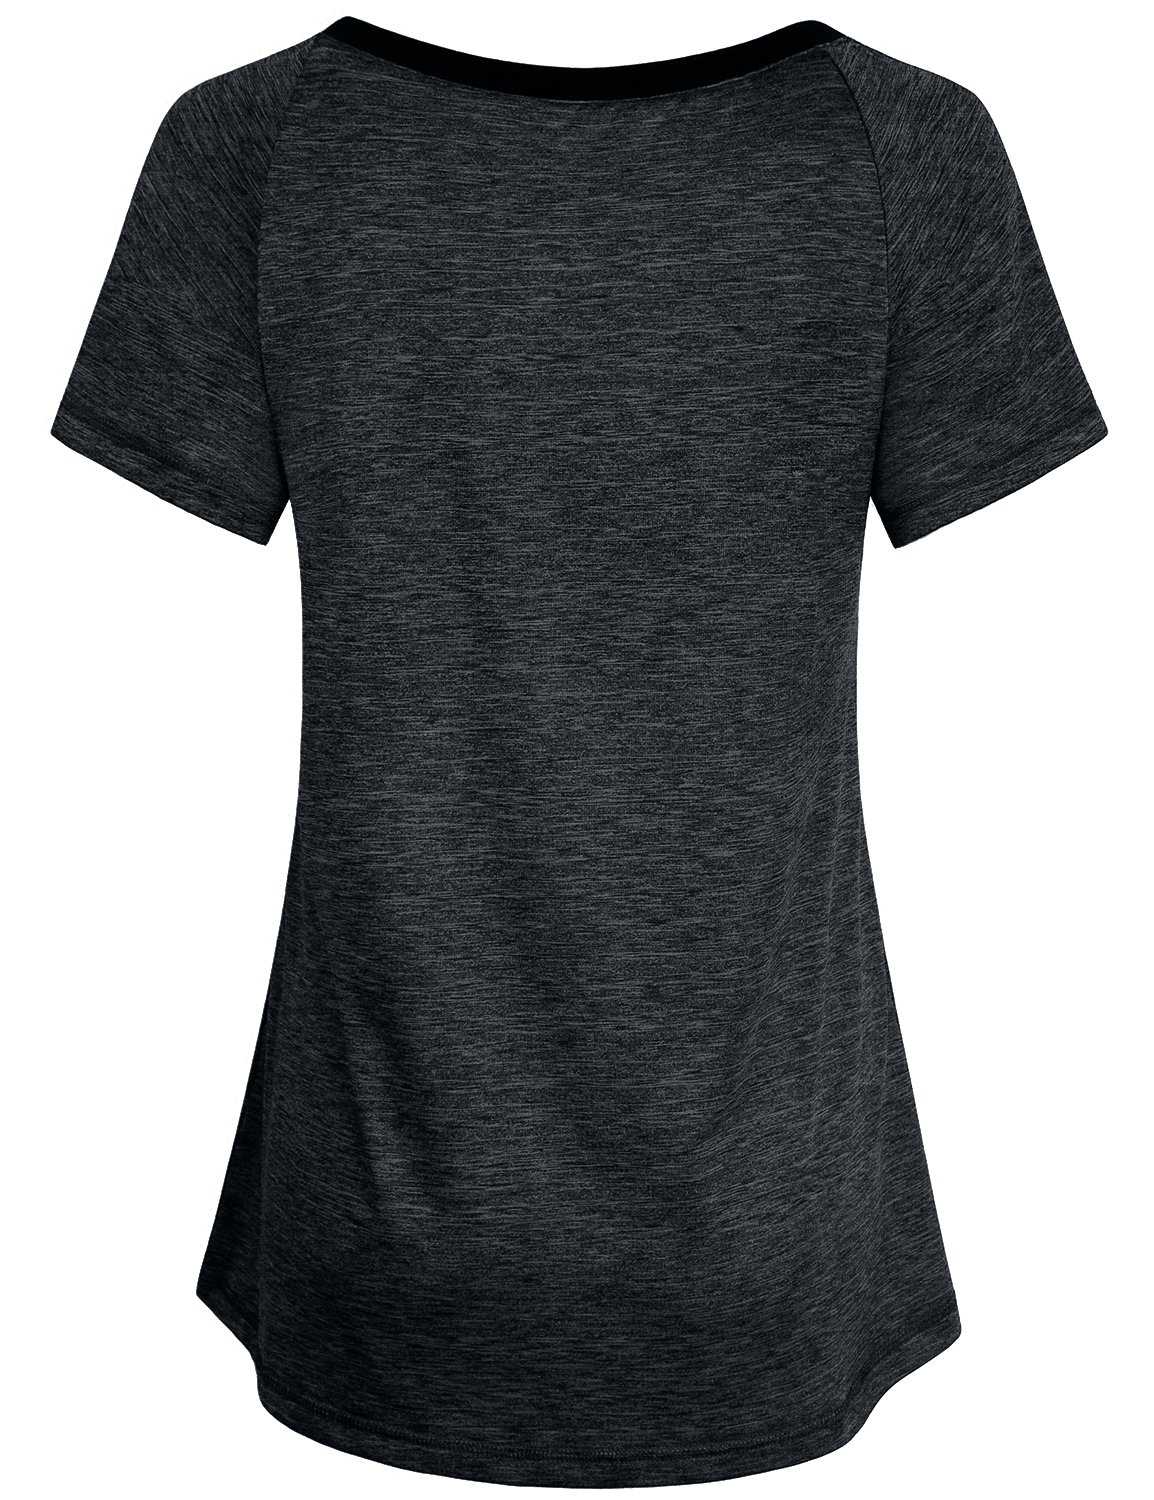 Miusey Gym T Shirt for Women, Ladies V Neck Athletic Short Sleeve Daily Wear Unisex Tshirt Blouse Knitted Spring Yoga Light Fitted Dressy Utility Trendy Black L by Miusey (Image #2)